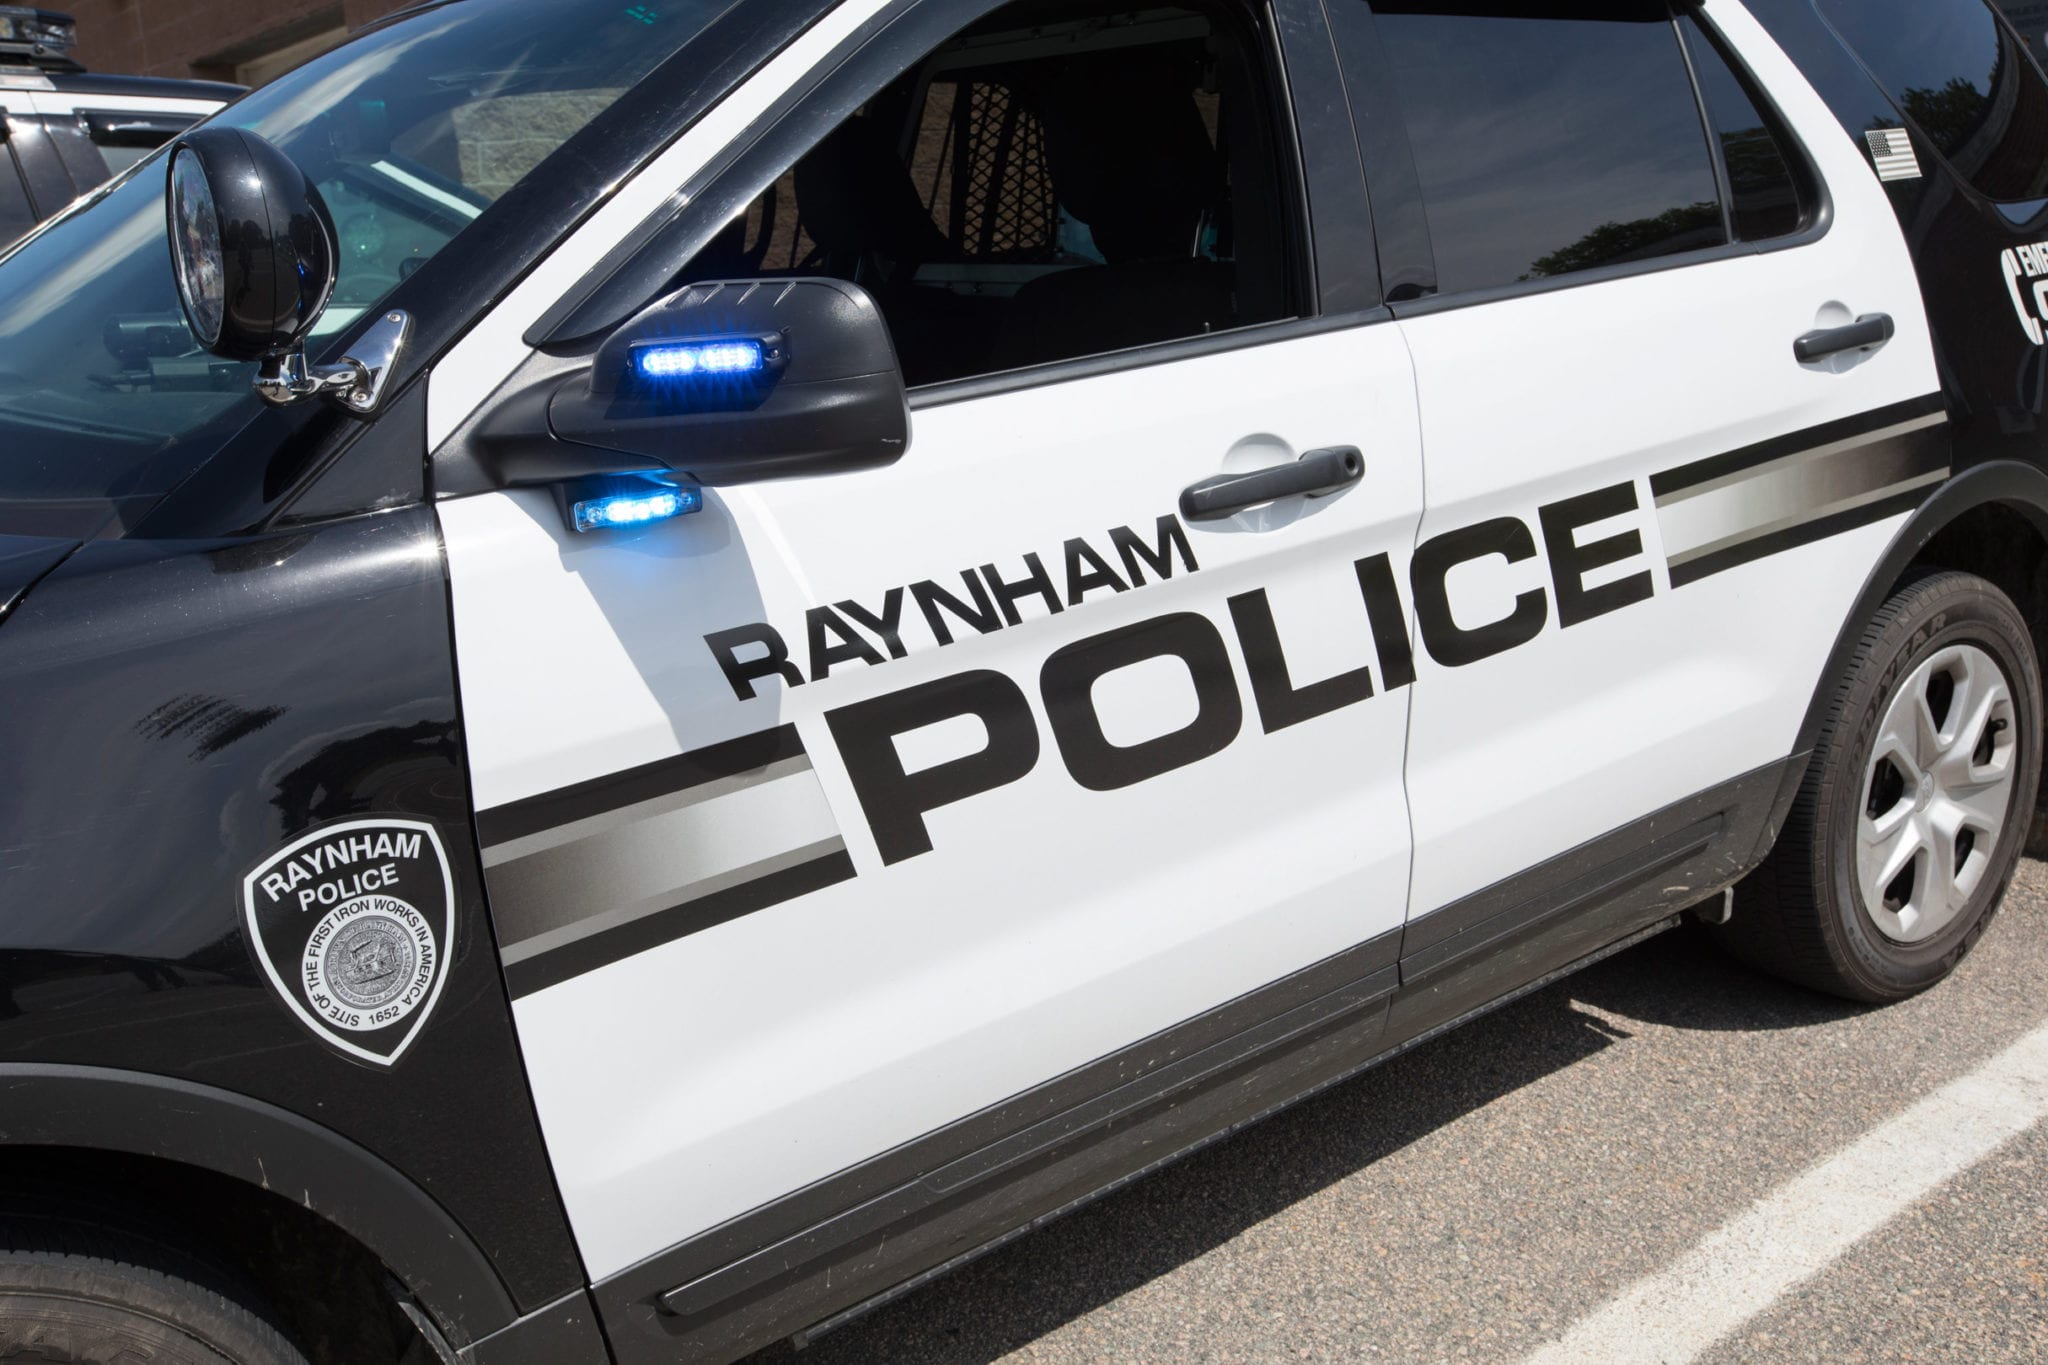 About the Raynham Police Department